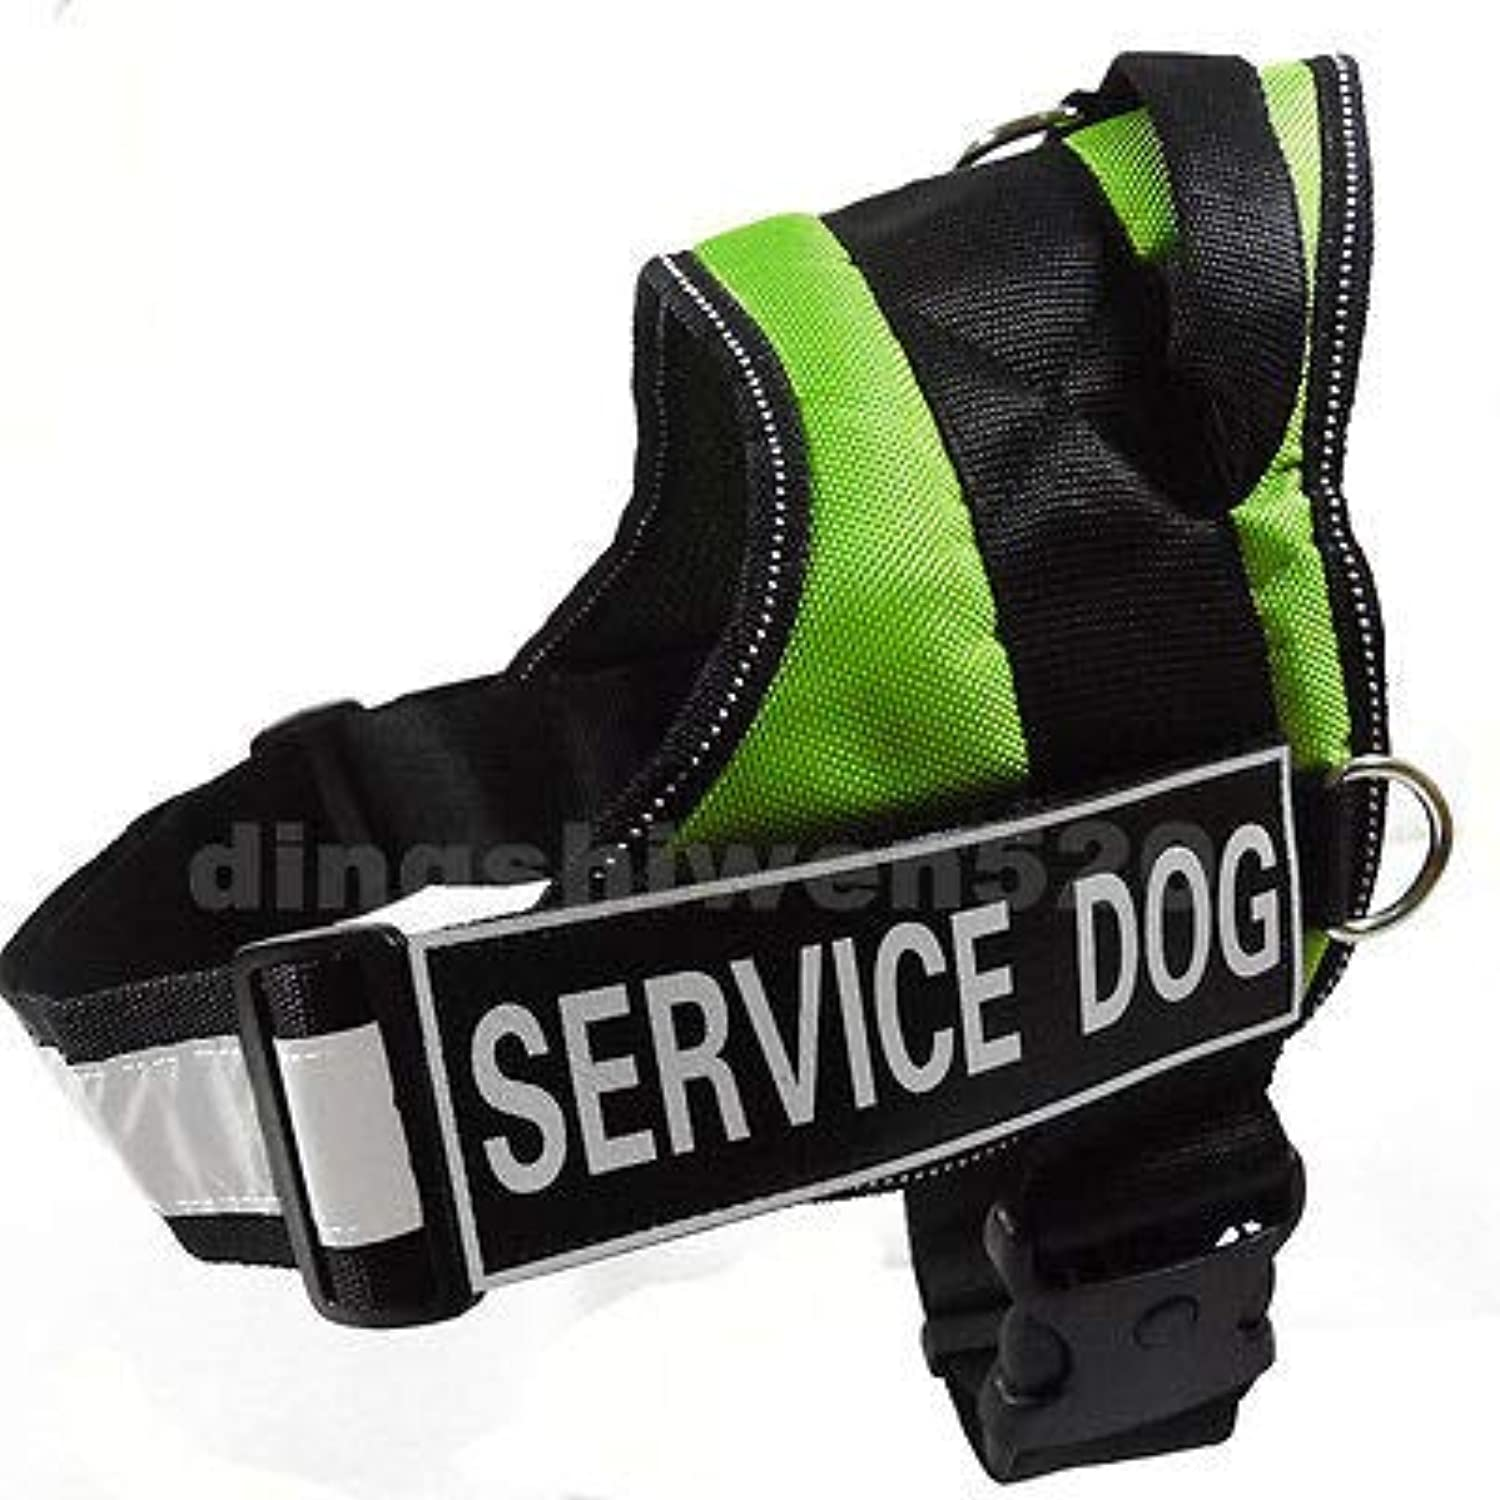 FidgetGear New Padded Service Dog Harness Vest Reflective Safe Removable Label Patches Green Small 2427